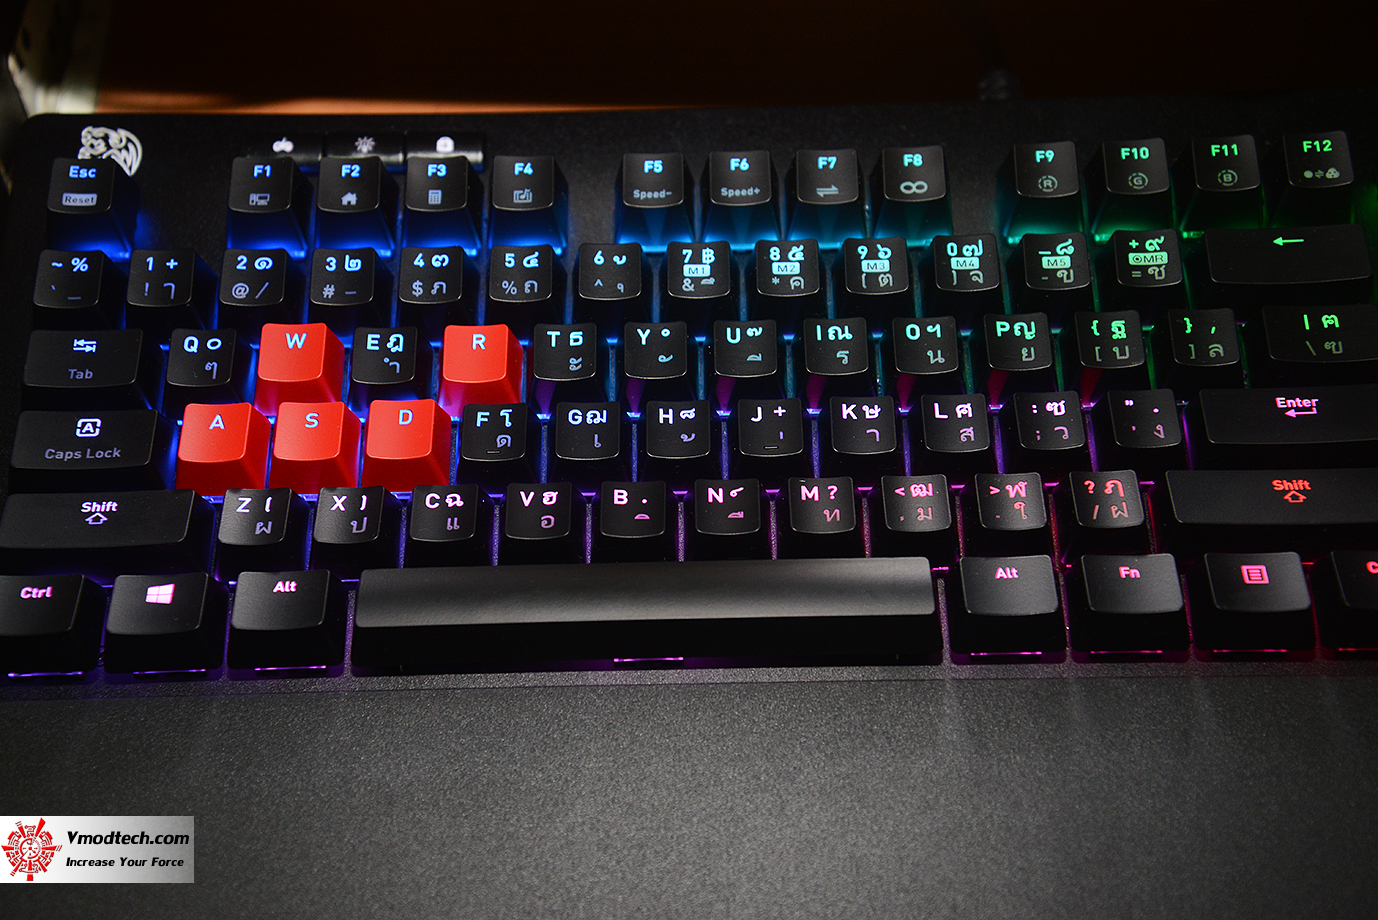 ab7a2712983 Tt eSPORTS Neptune Elite RGB Blue Gaming Keyboard Review ,Tt eSPORTS ...